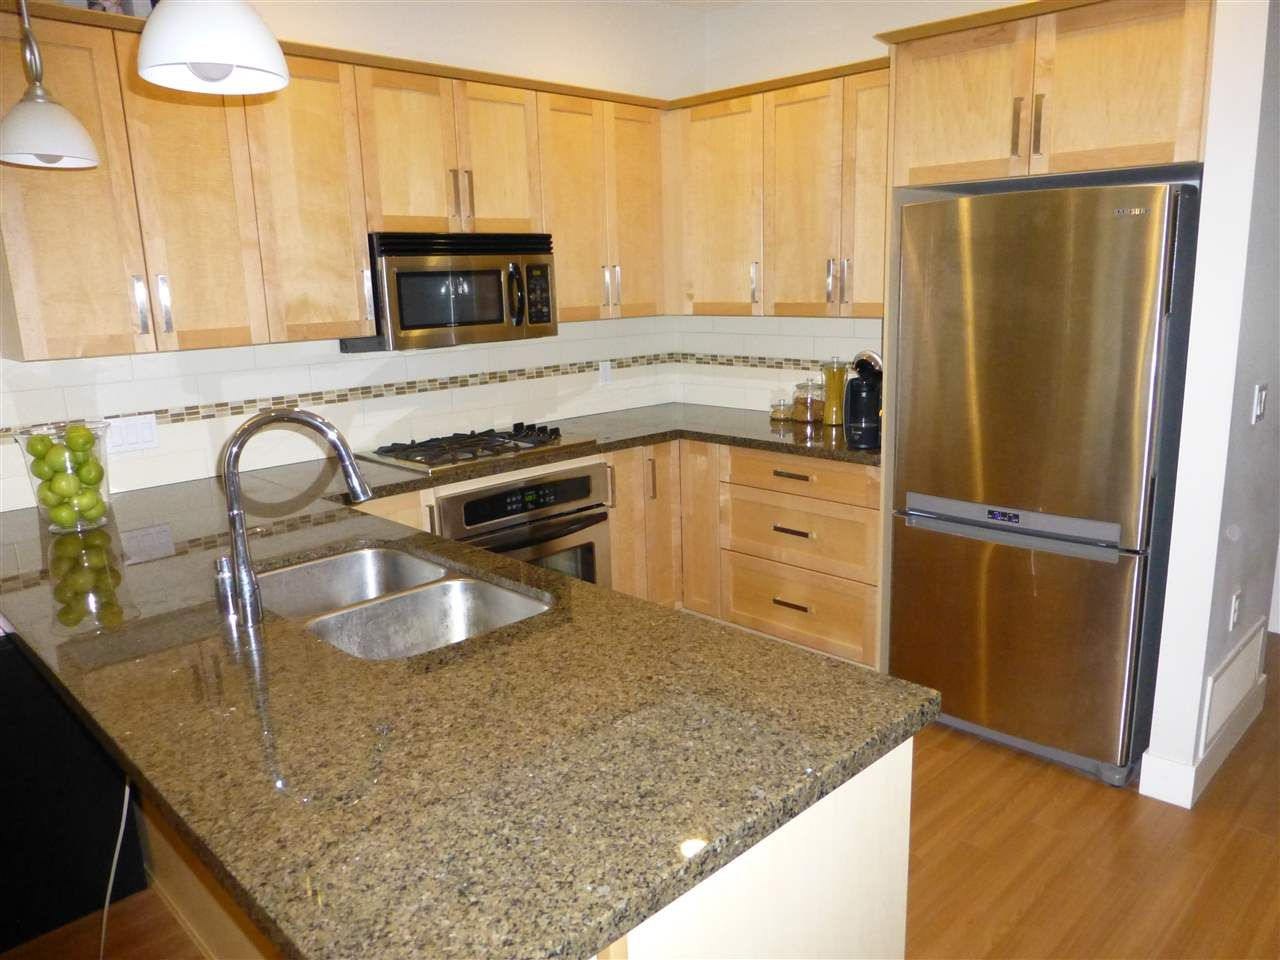 """Main Photo: 47 22865 TELOSKY Avenue in Maple Ridge: East Central Townhouse for sale in """"WINGSONG"""" : MLS®# R2108327"""